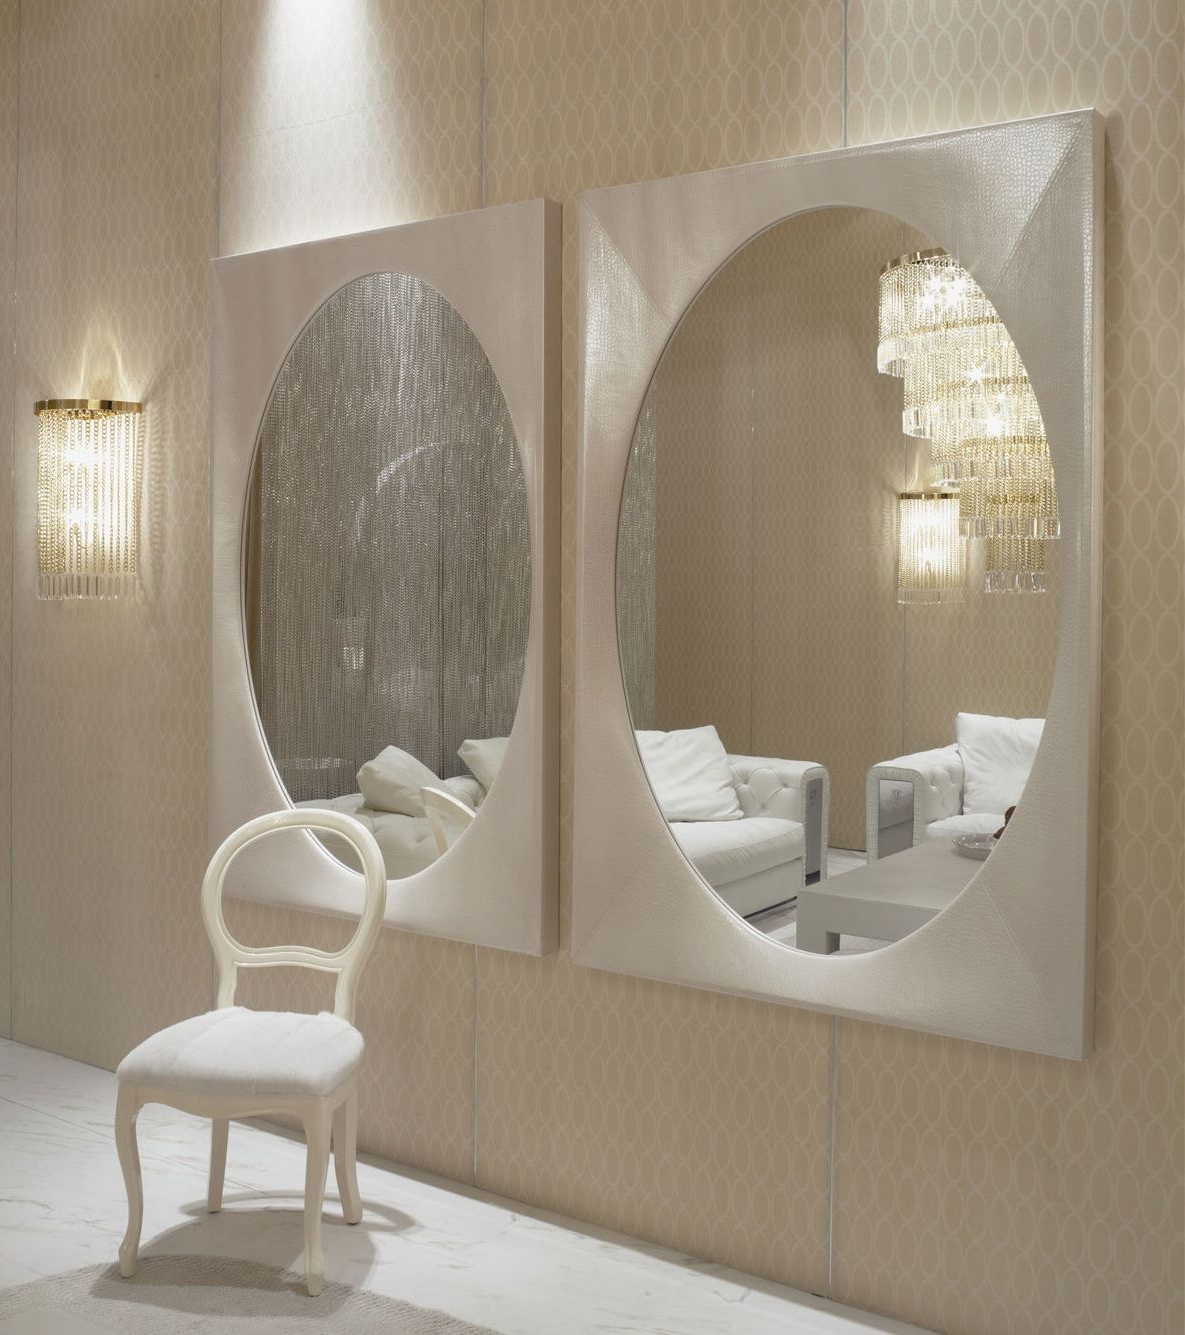 Favorite Modern Wall Mirrors Regarding Instyle Decor Wall Mirrors, Luxury Designer Wall Mirrors, Modern (View 17 of 20)